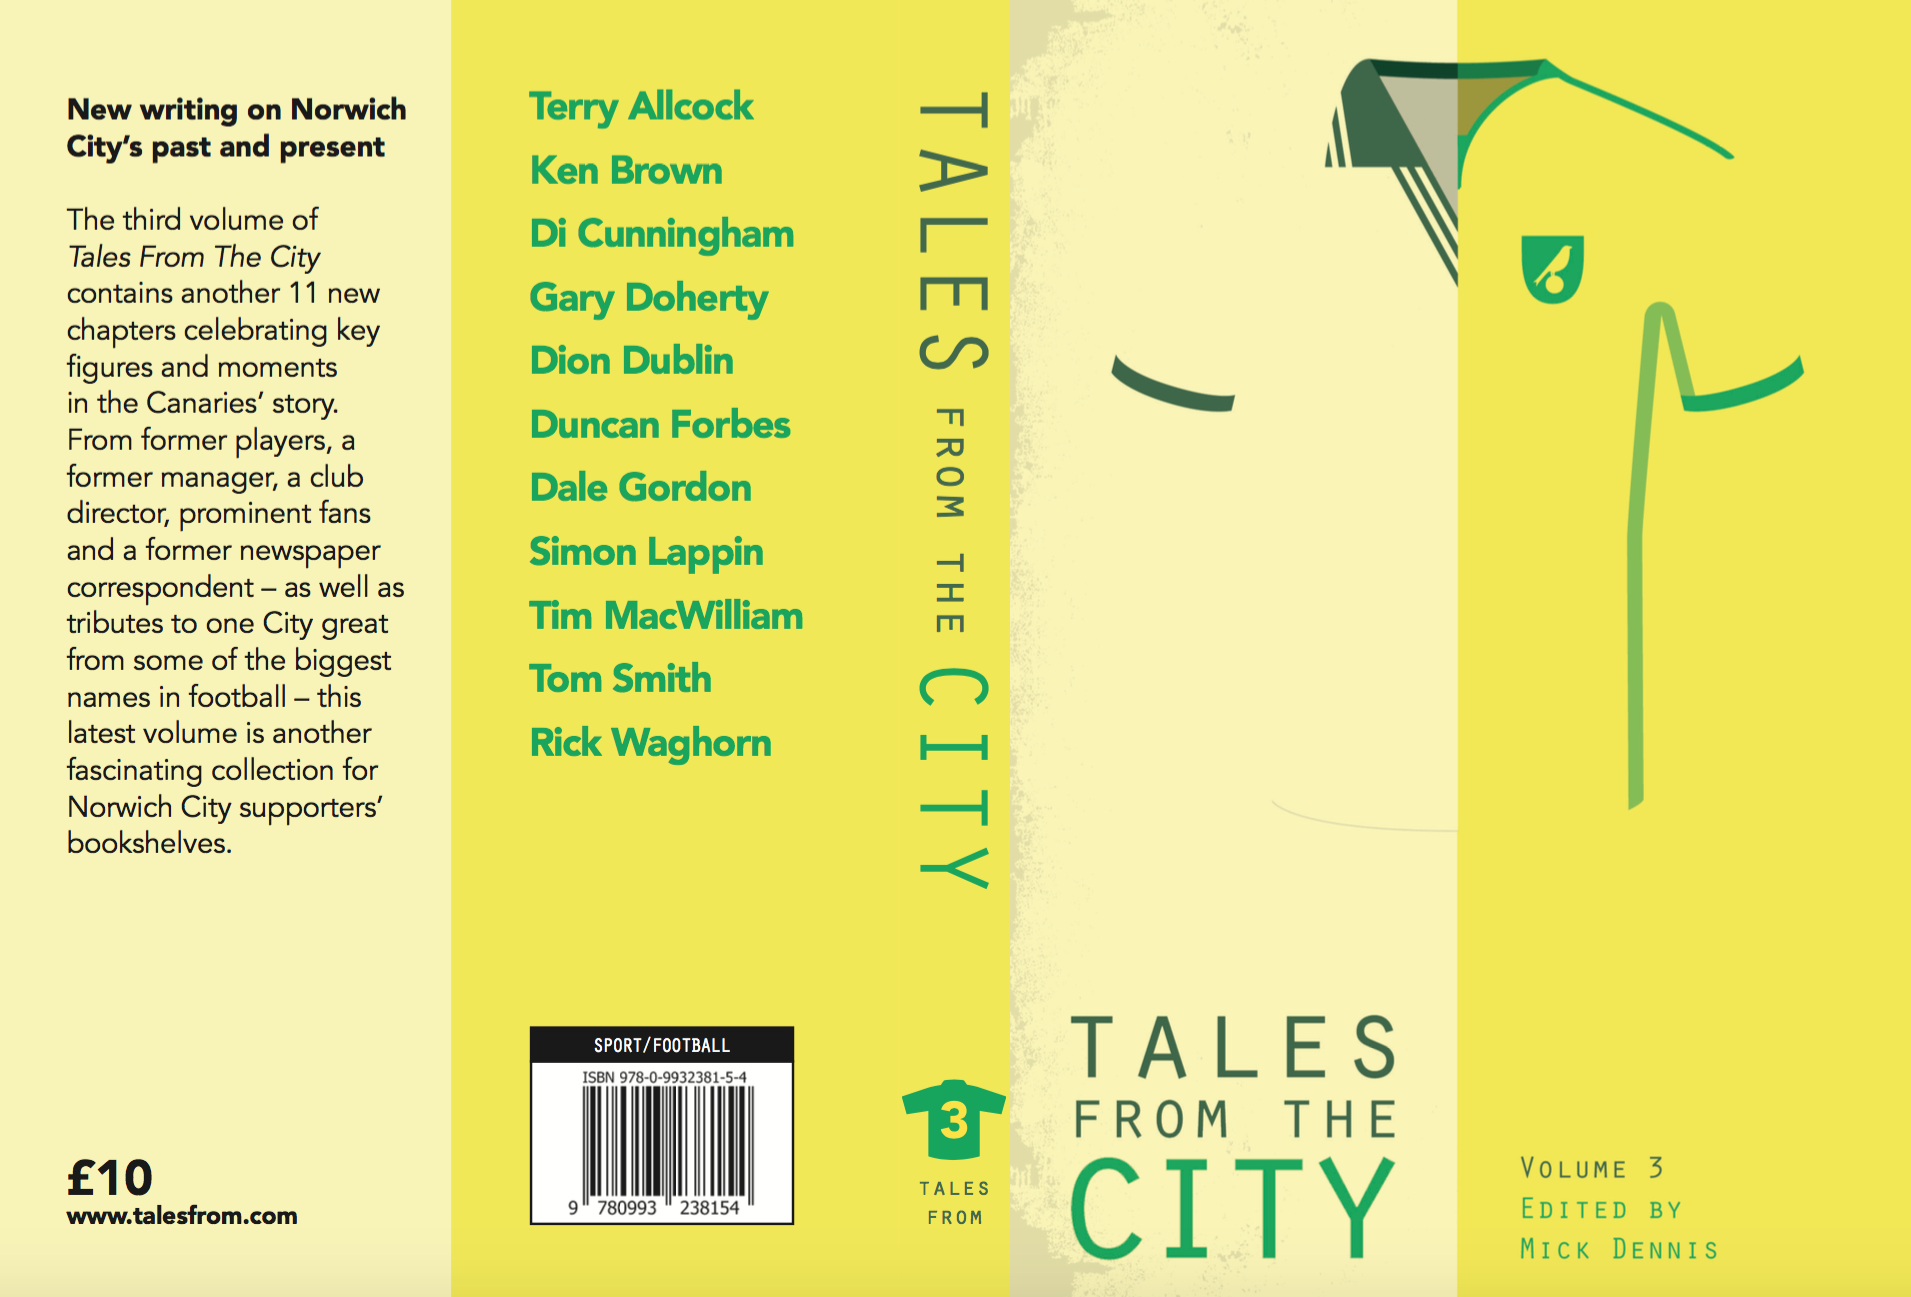 Tales from the City Volume 3